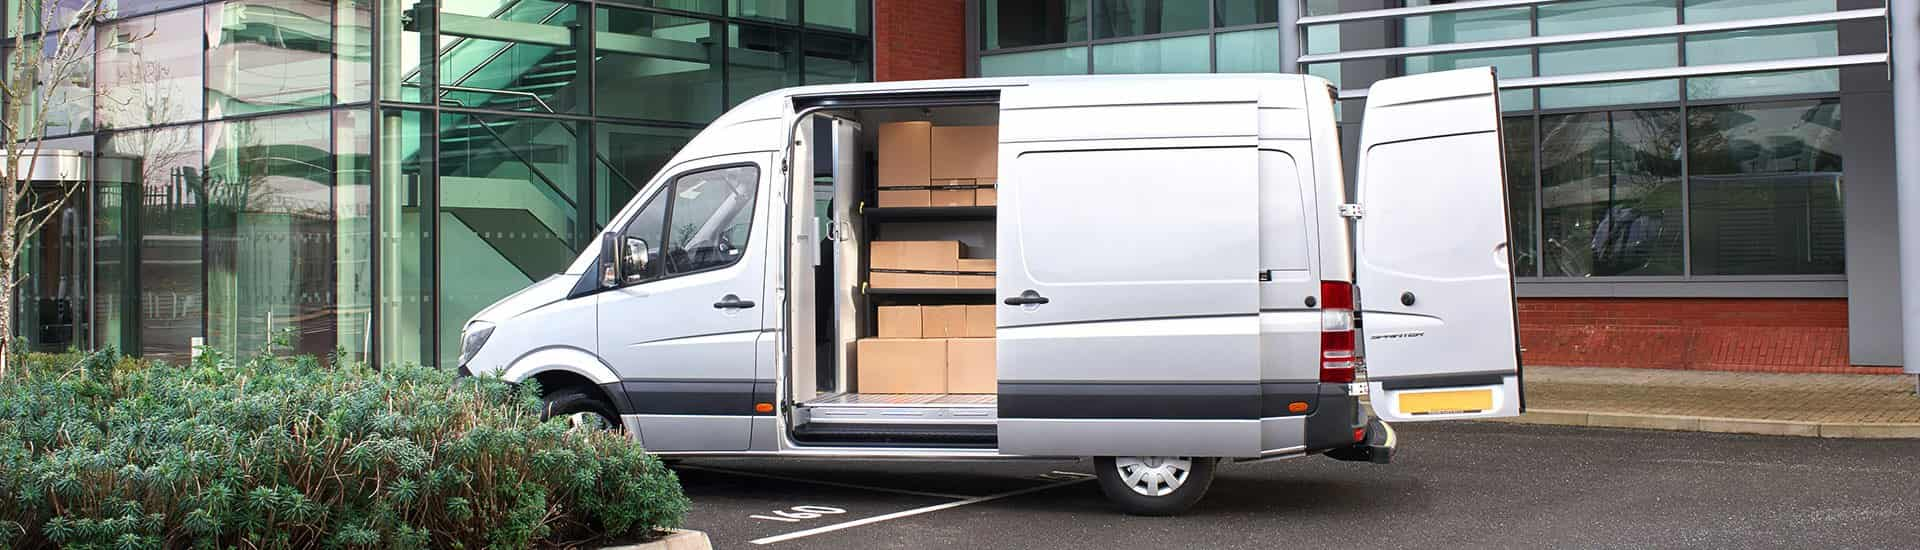 Global Turnkey Vehicle Fit-out Solutions Provider and